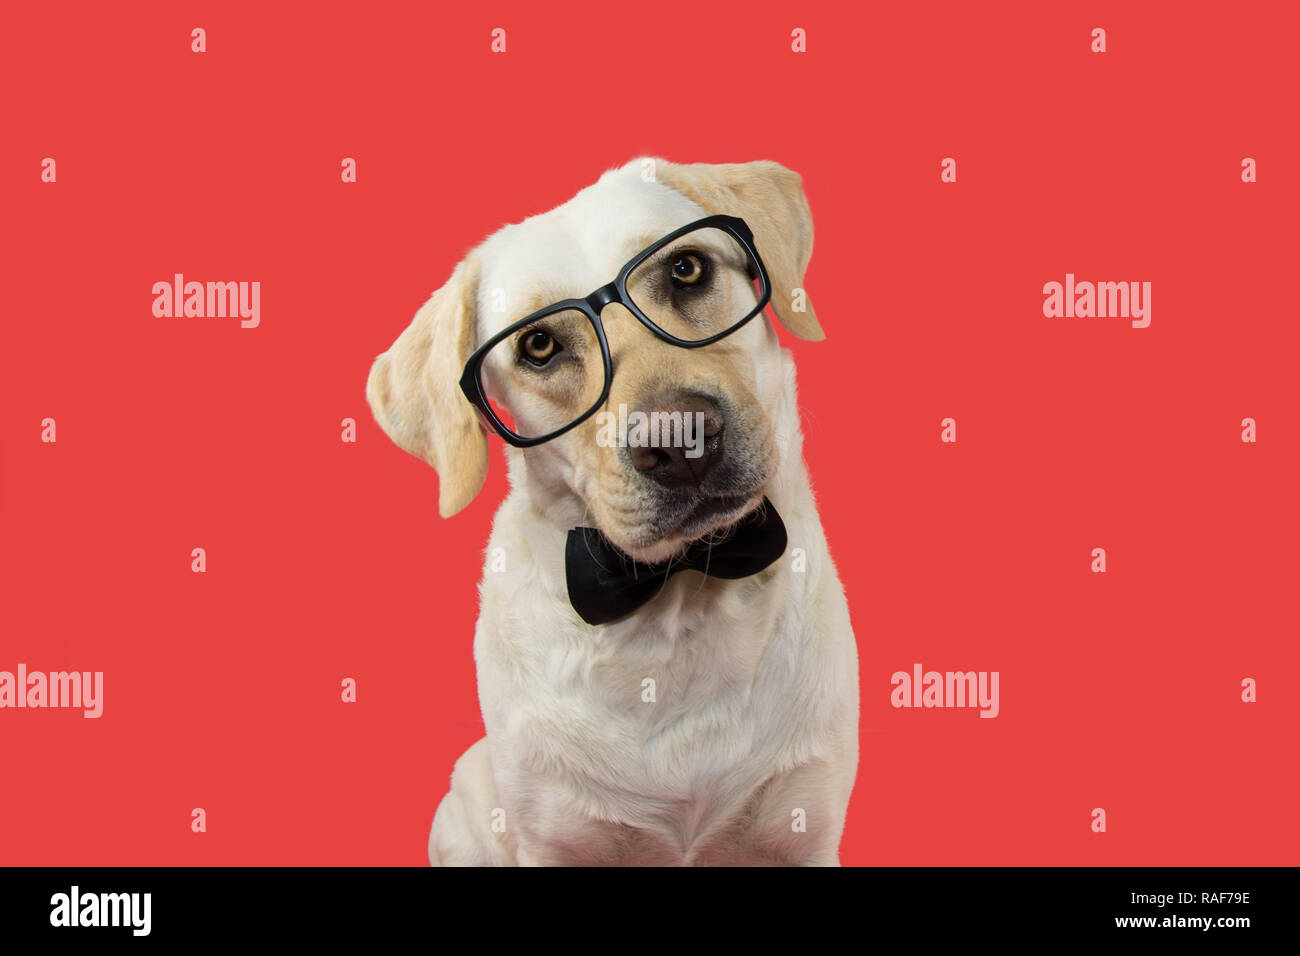 ELEGANT AND CLASSY DOG WITH GLASSES AND BLACK TIE. TILTING HEAD. ISOLATED AGAINST CORAL TREND BACKGROUND. - Stock Image